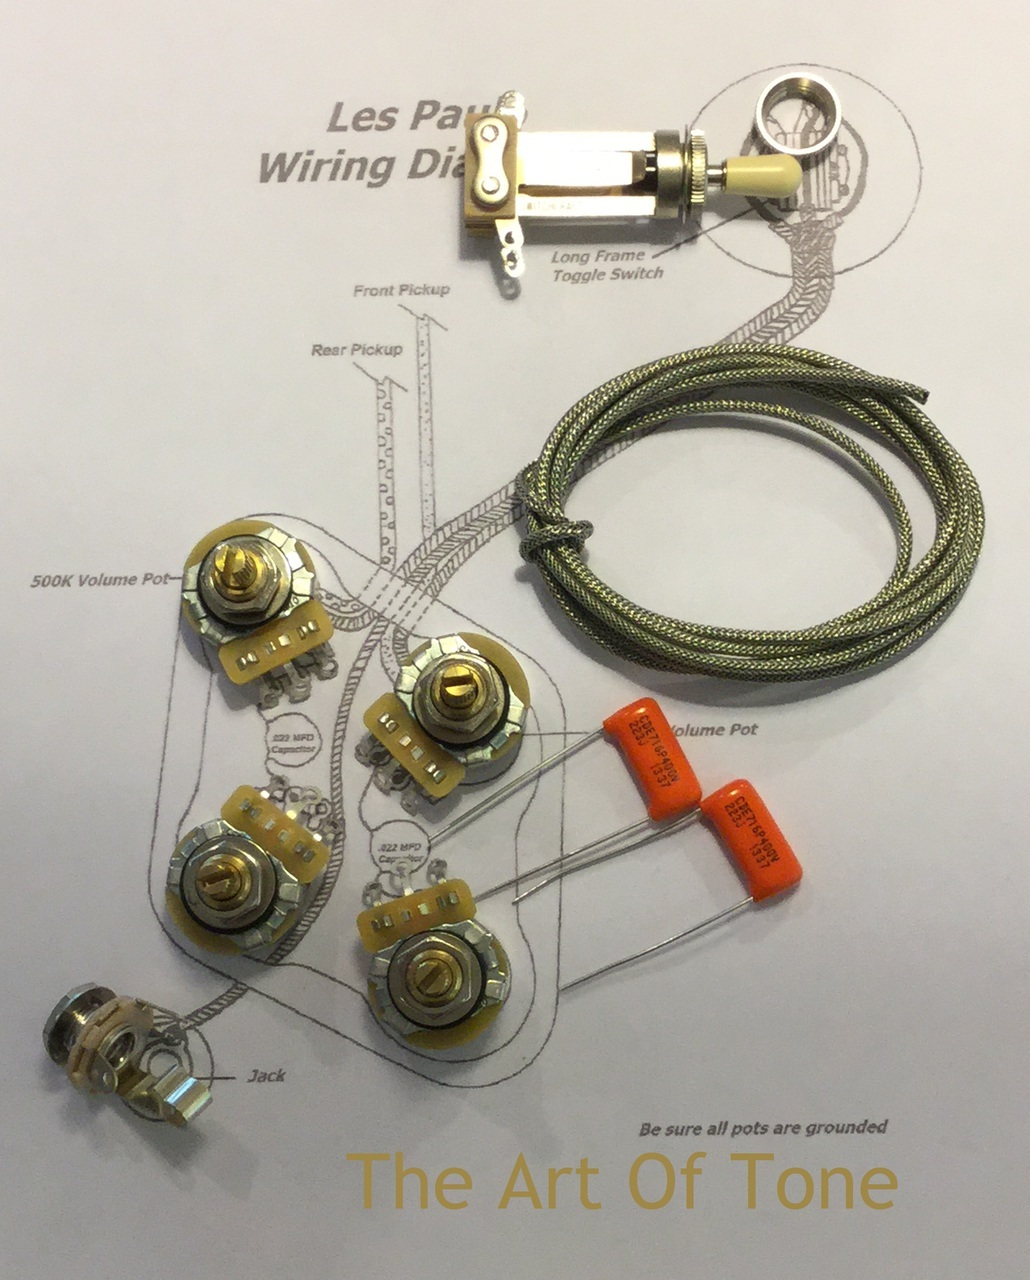 taot gibson les paul� short shaft cts taot 450s 525k pots orange drop caps 500k Guitar Wiring Diagrams